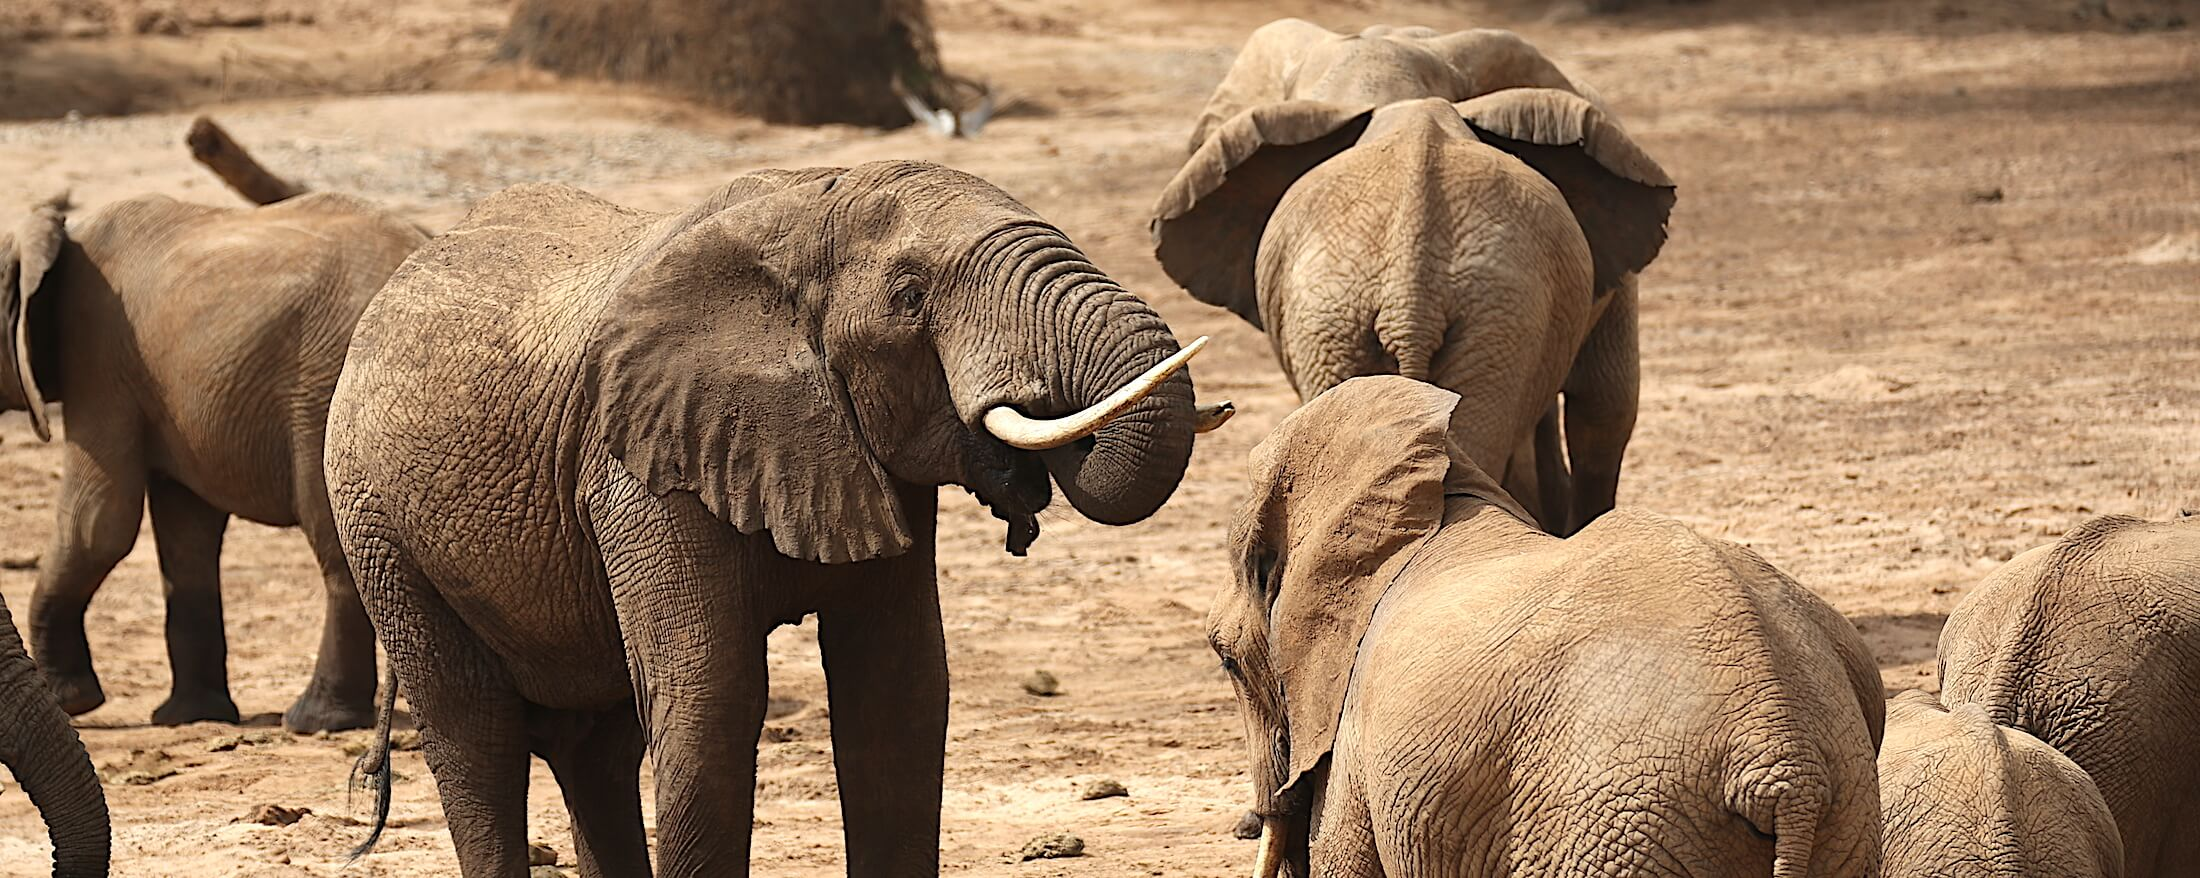 Elephants on safari in Samburu National Reserve | Art of Safari